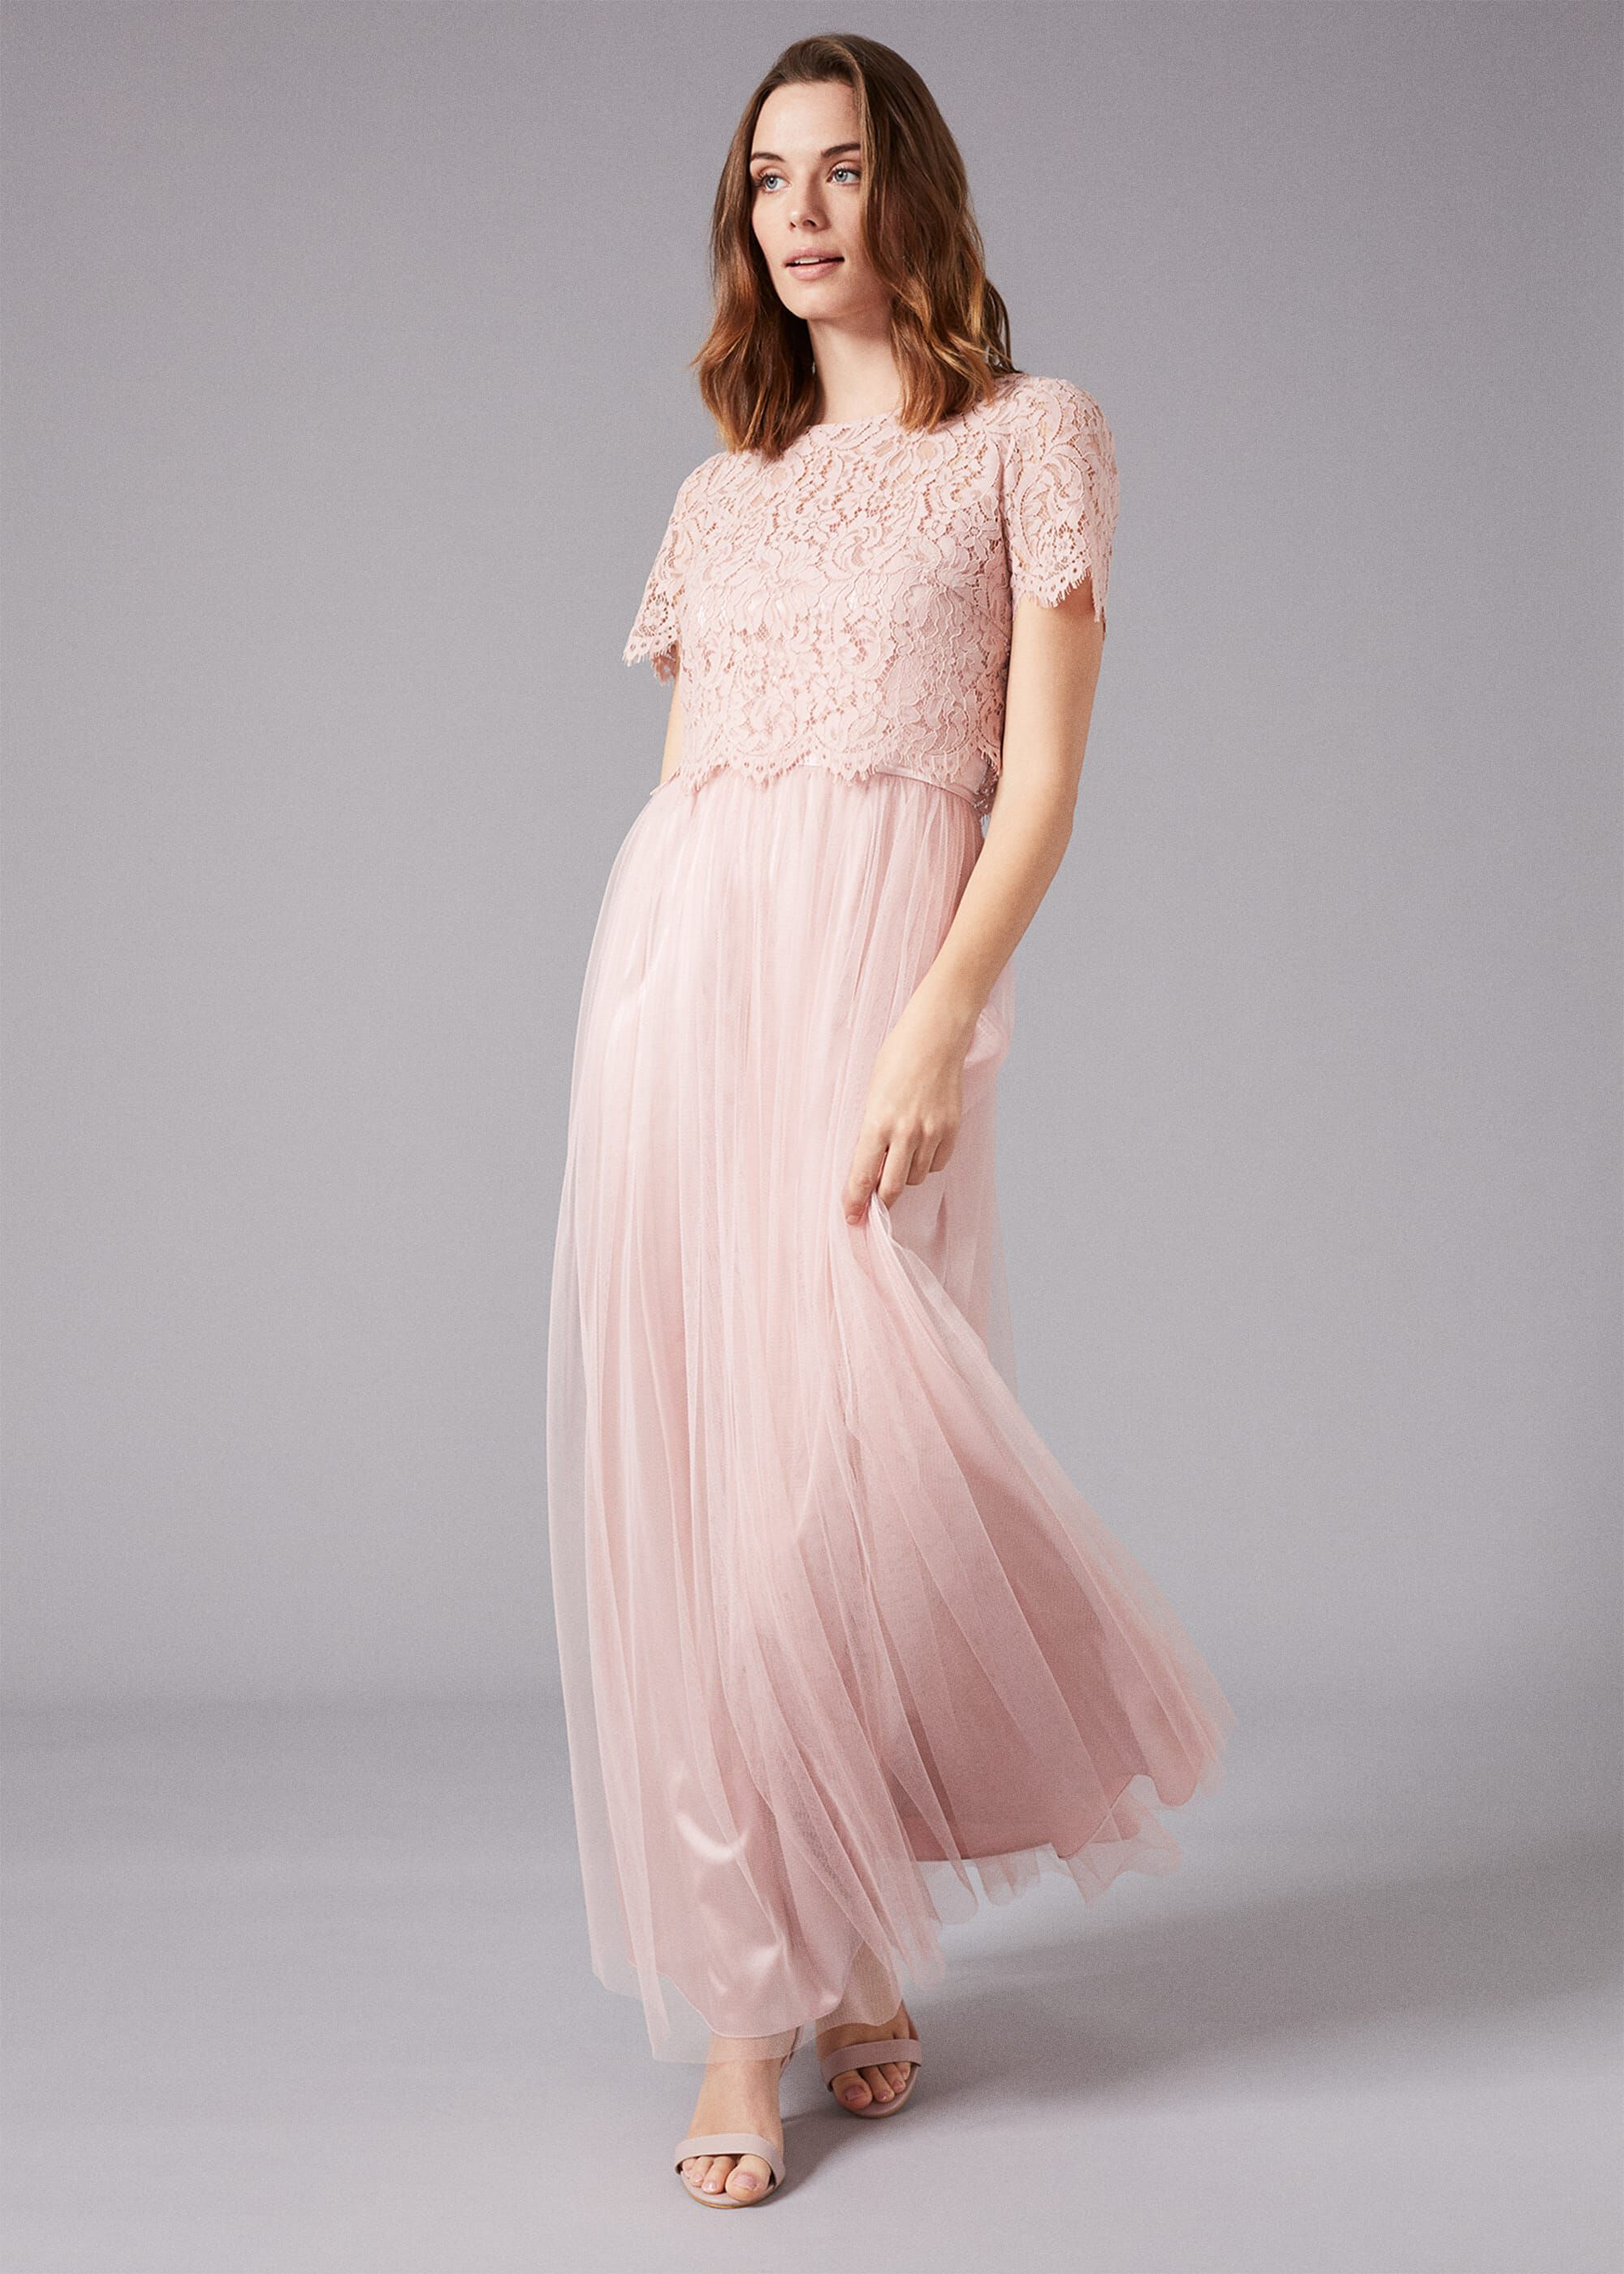 Phase Eight Kiera Lace Tulle Maxi Dress, Pink, Maxi, Occasion Dress